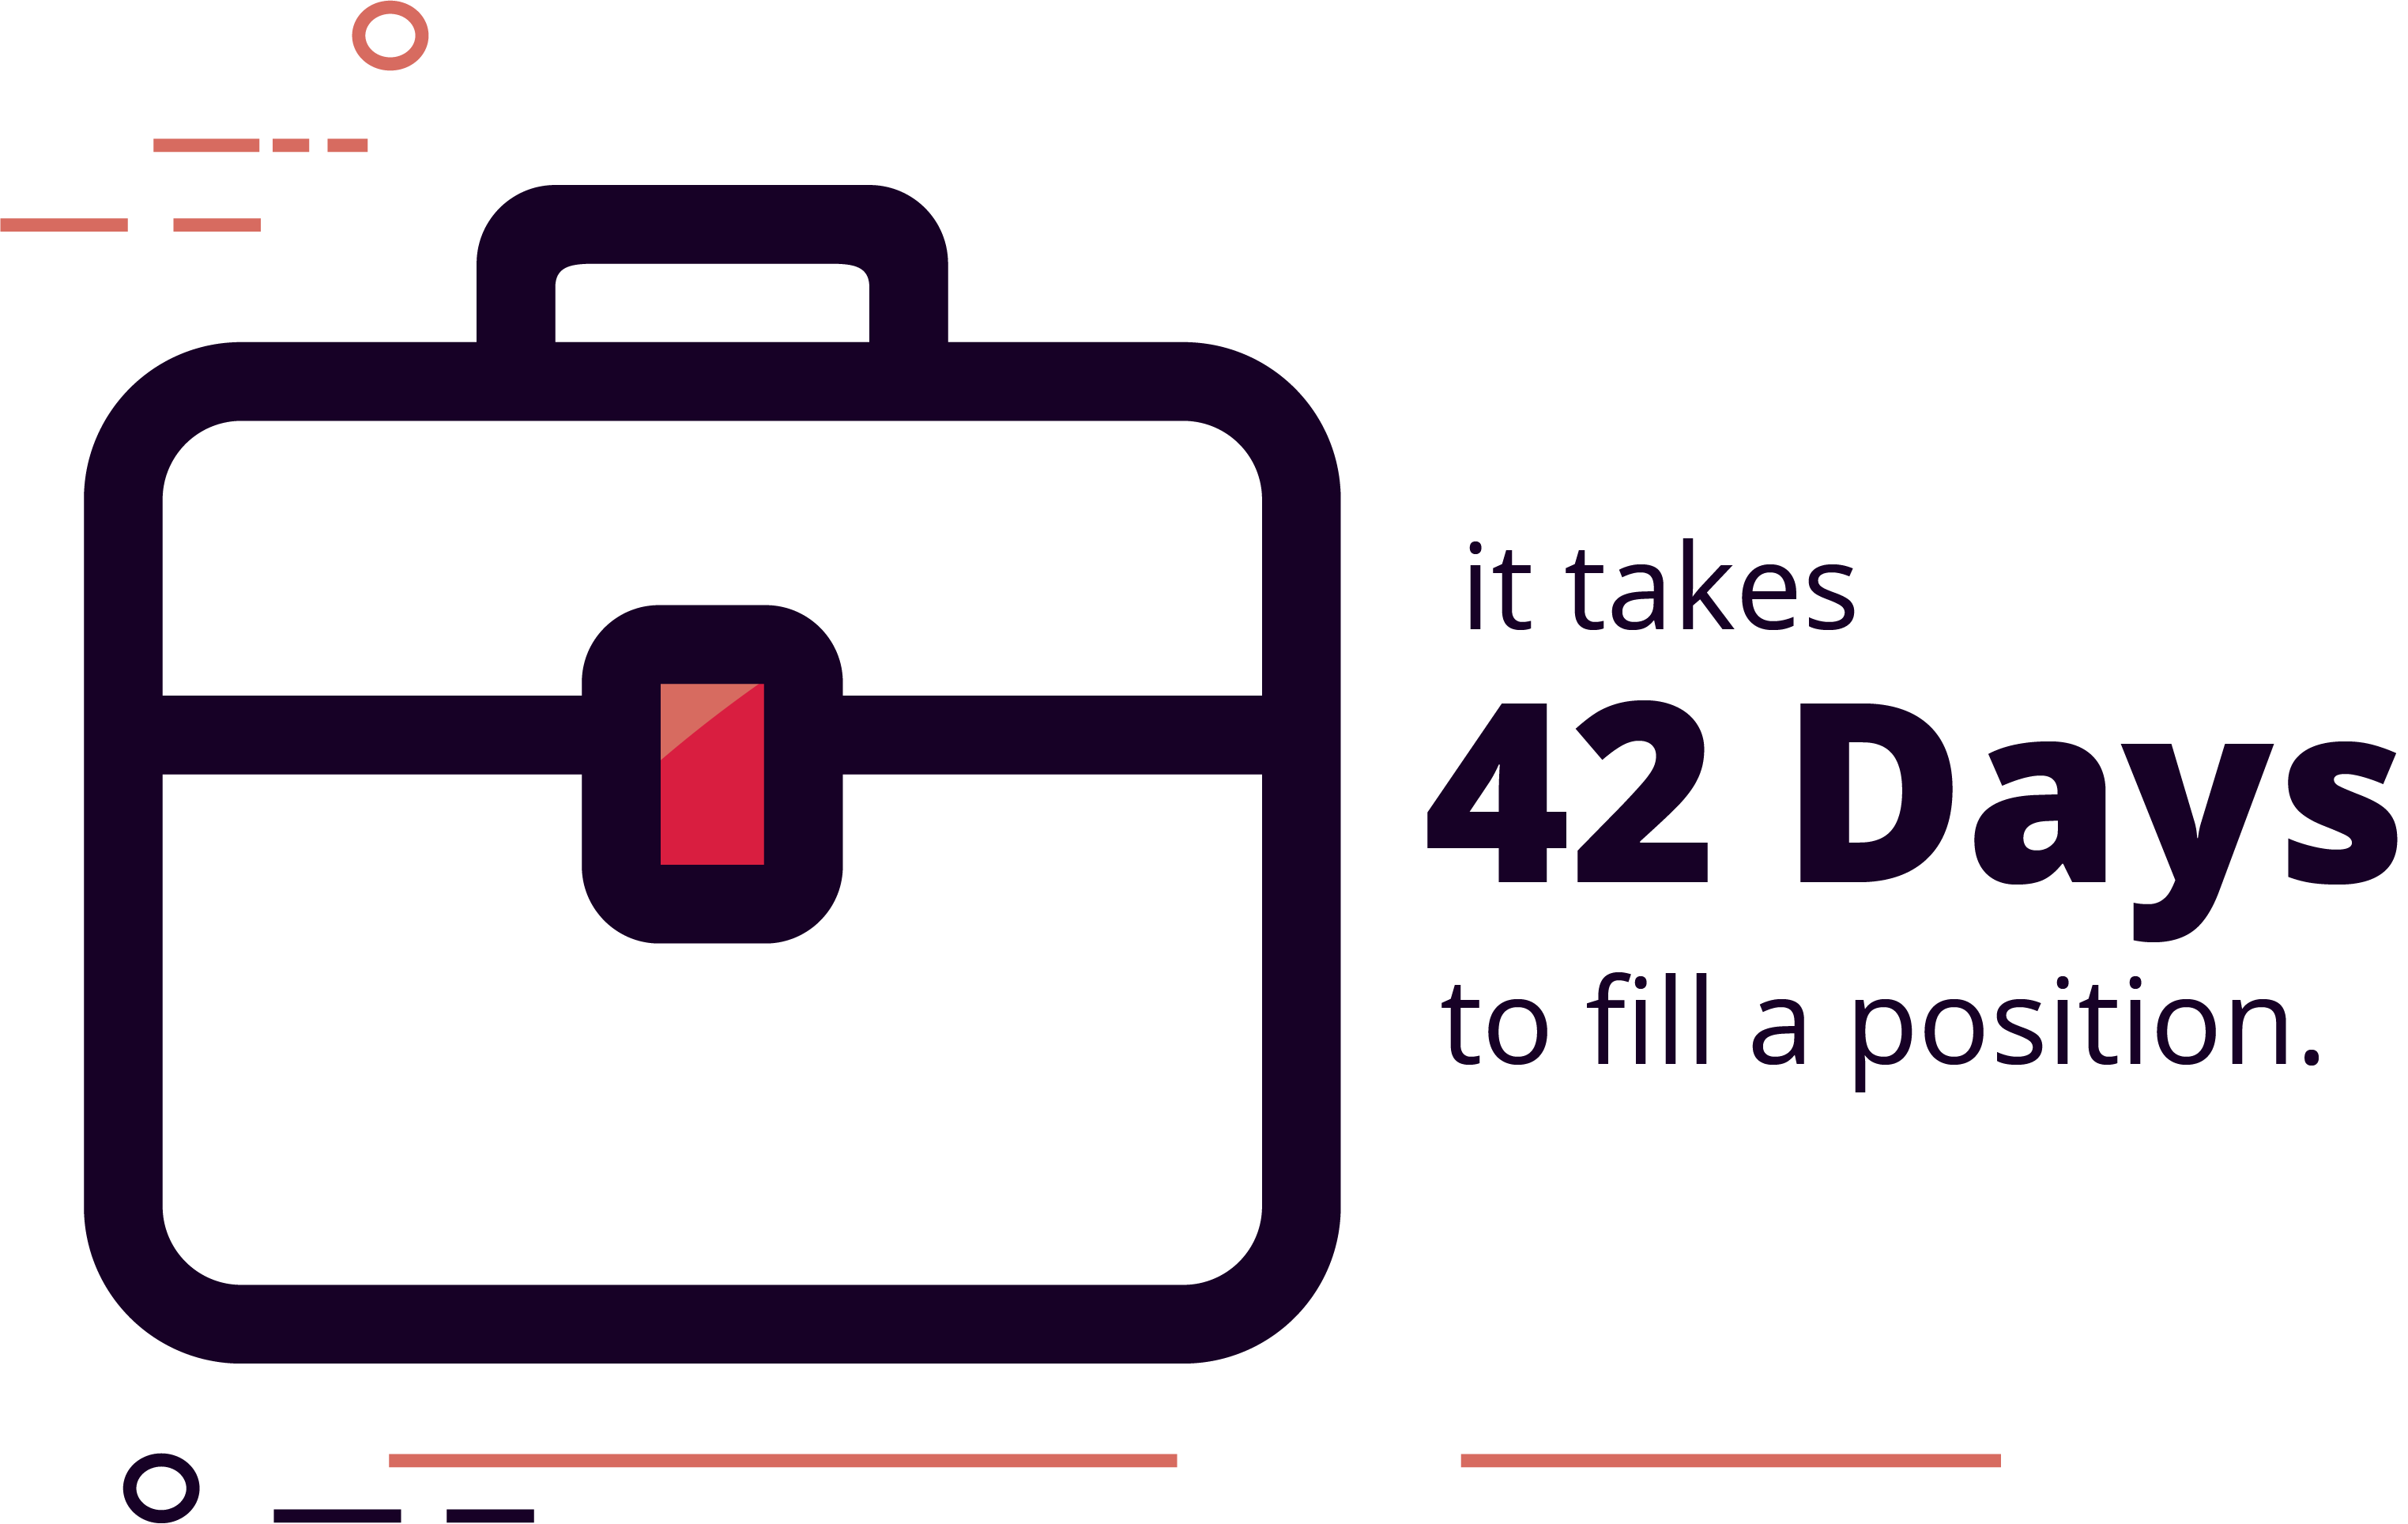 It takes 42 days to fill a position